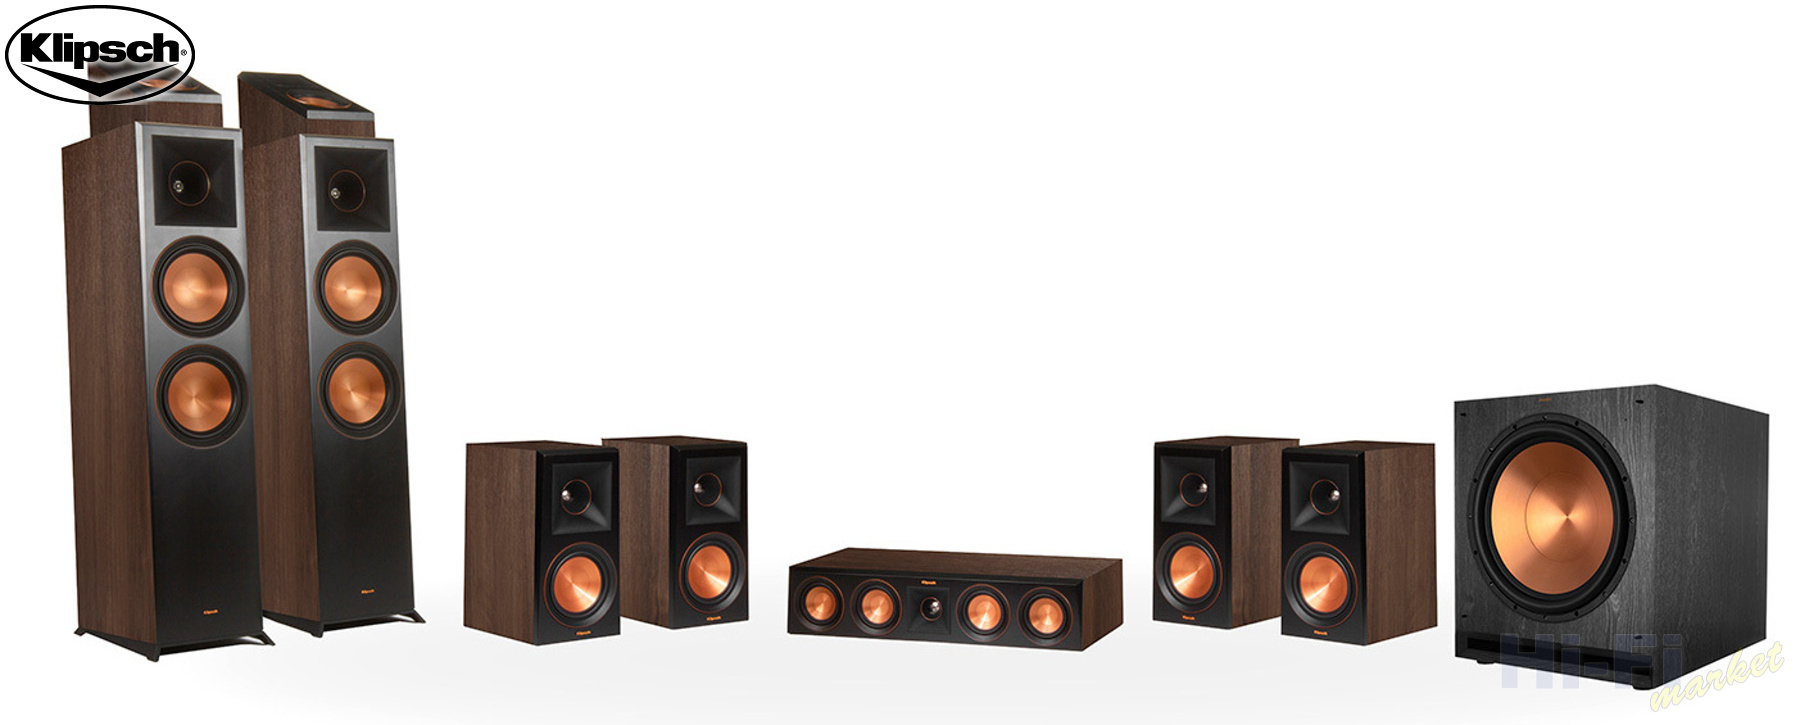 KLIPSCH Reference Premiere RP-8000F set 7.1.2 Dolby Atmos